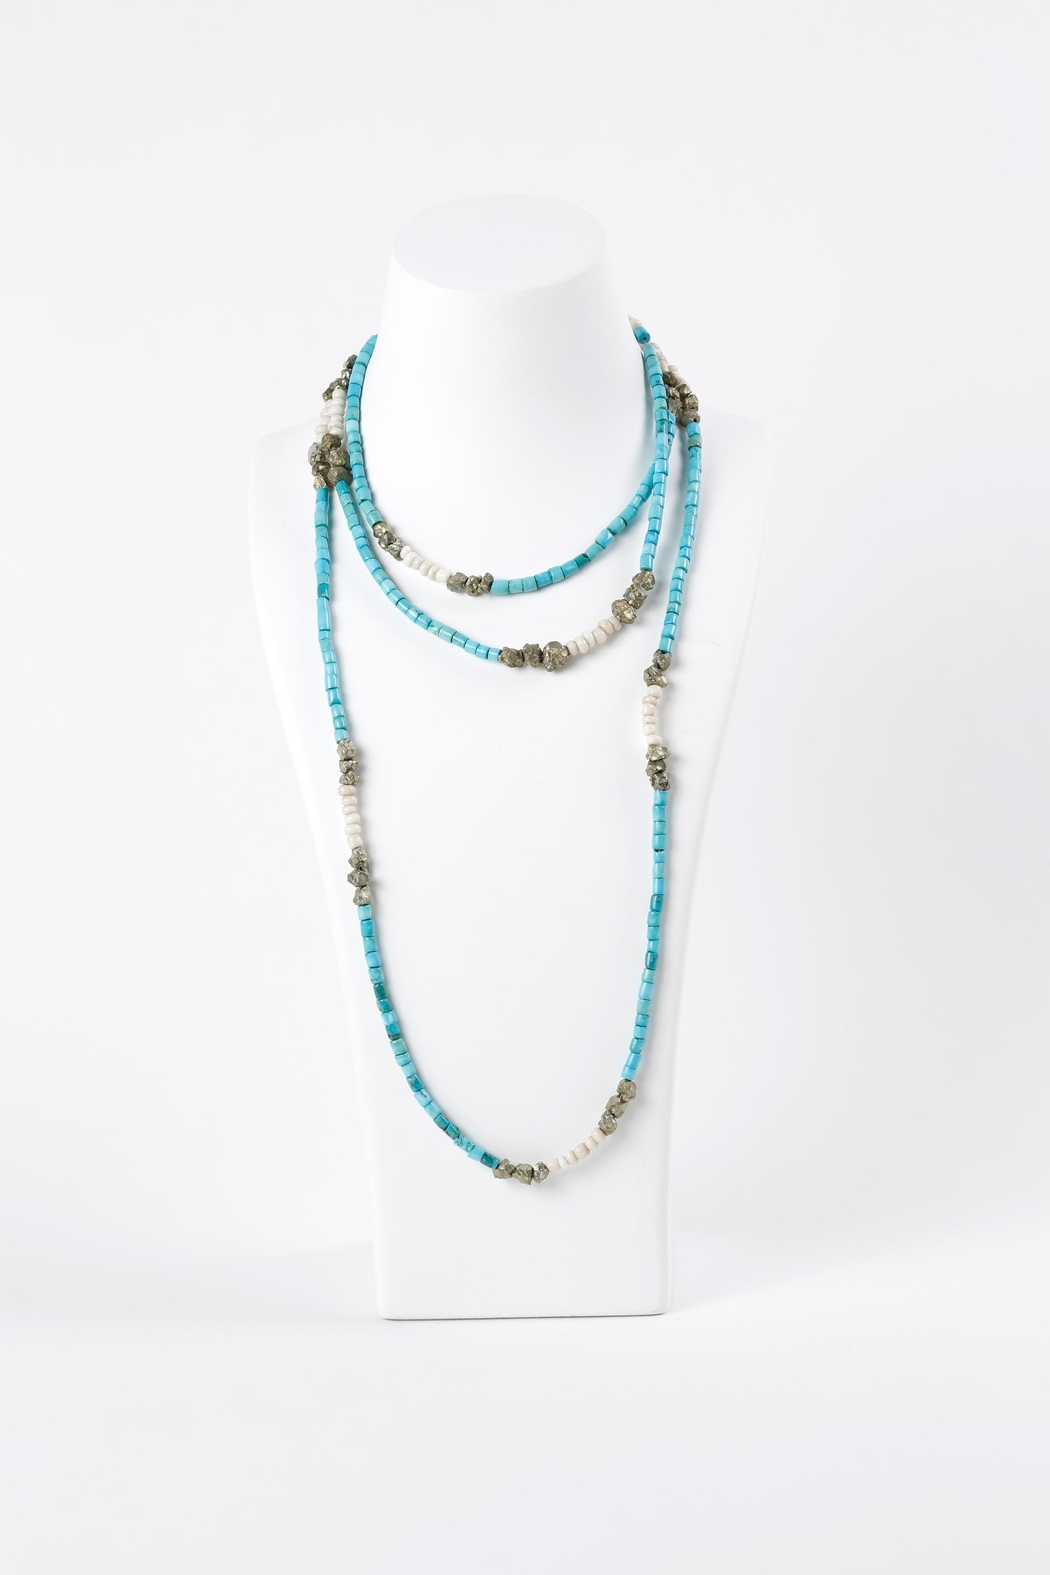 Susan McVicker Jewelry Long Turquoise Necklace - Main Image